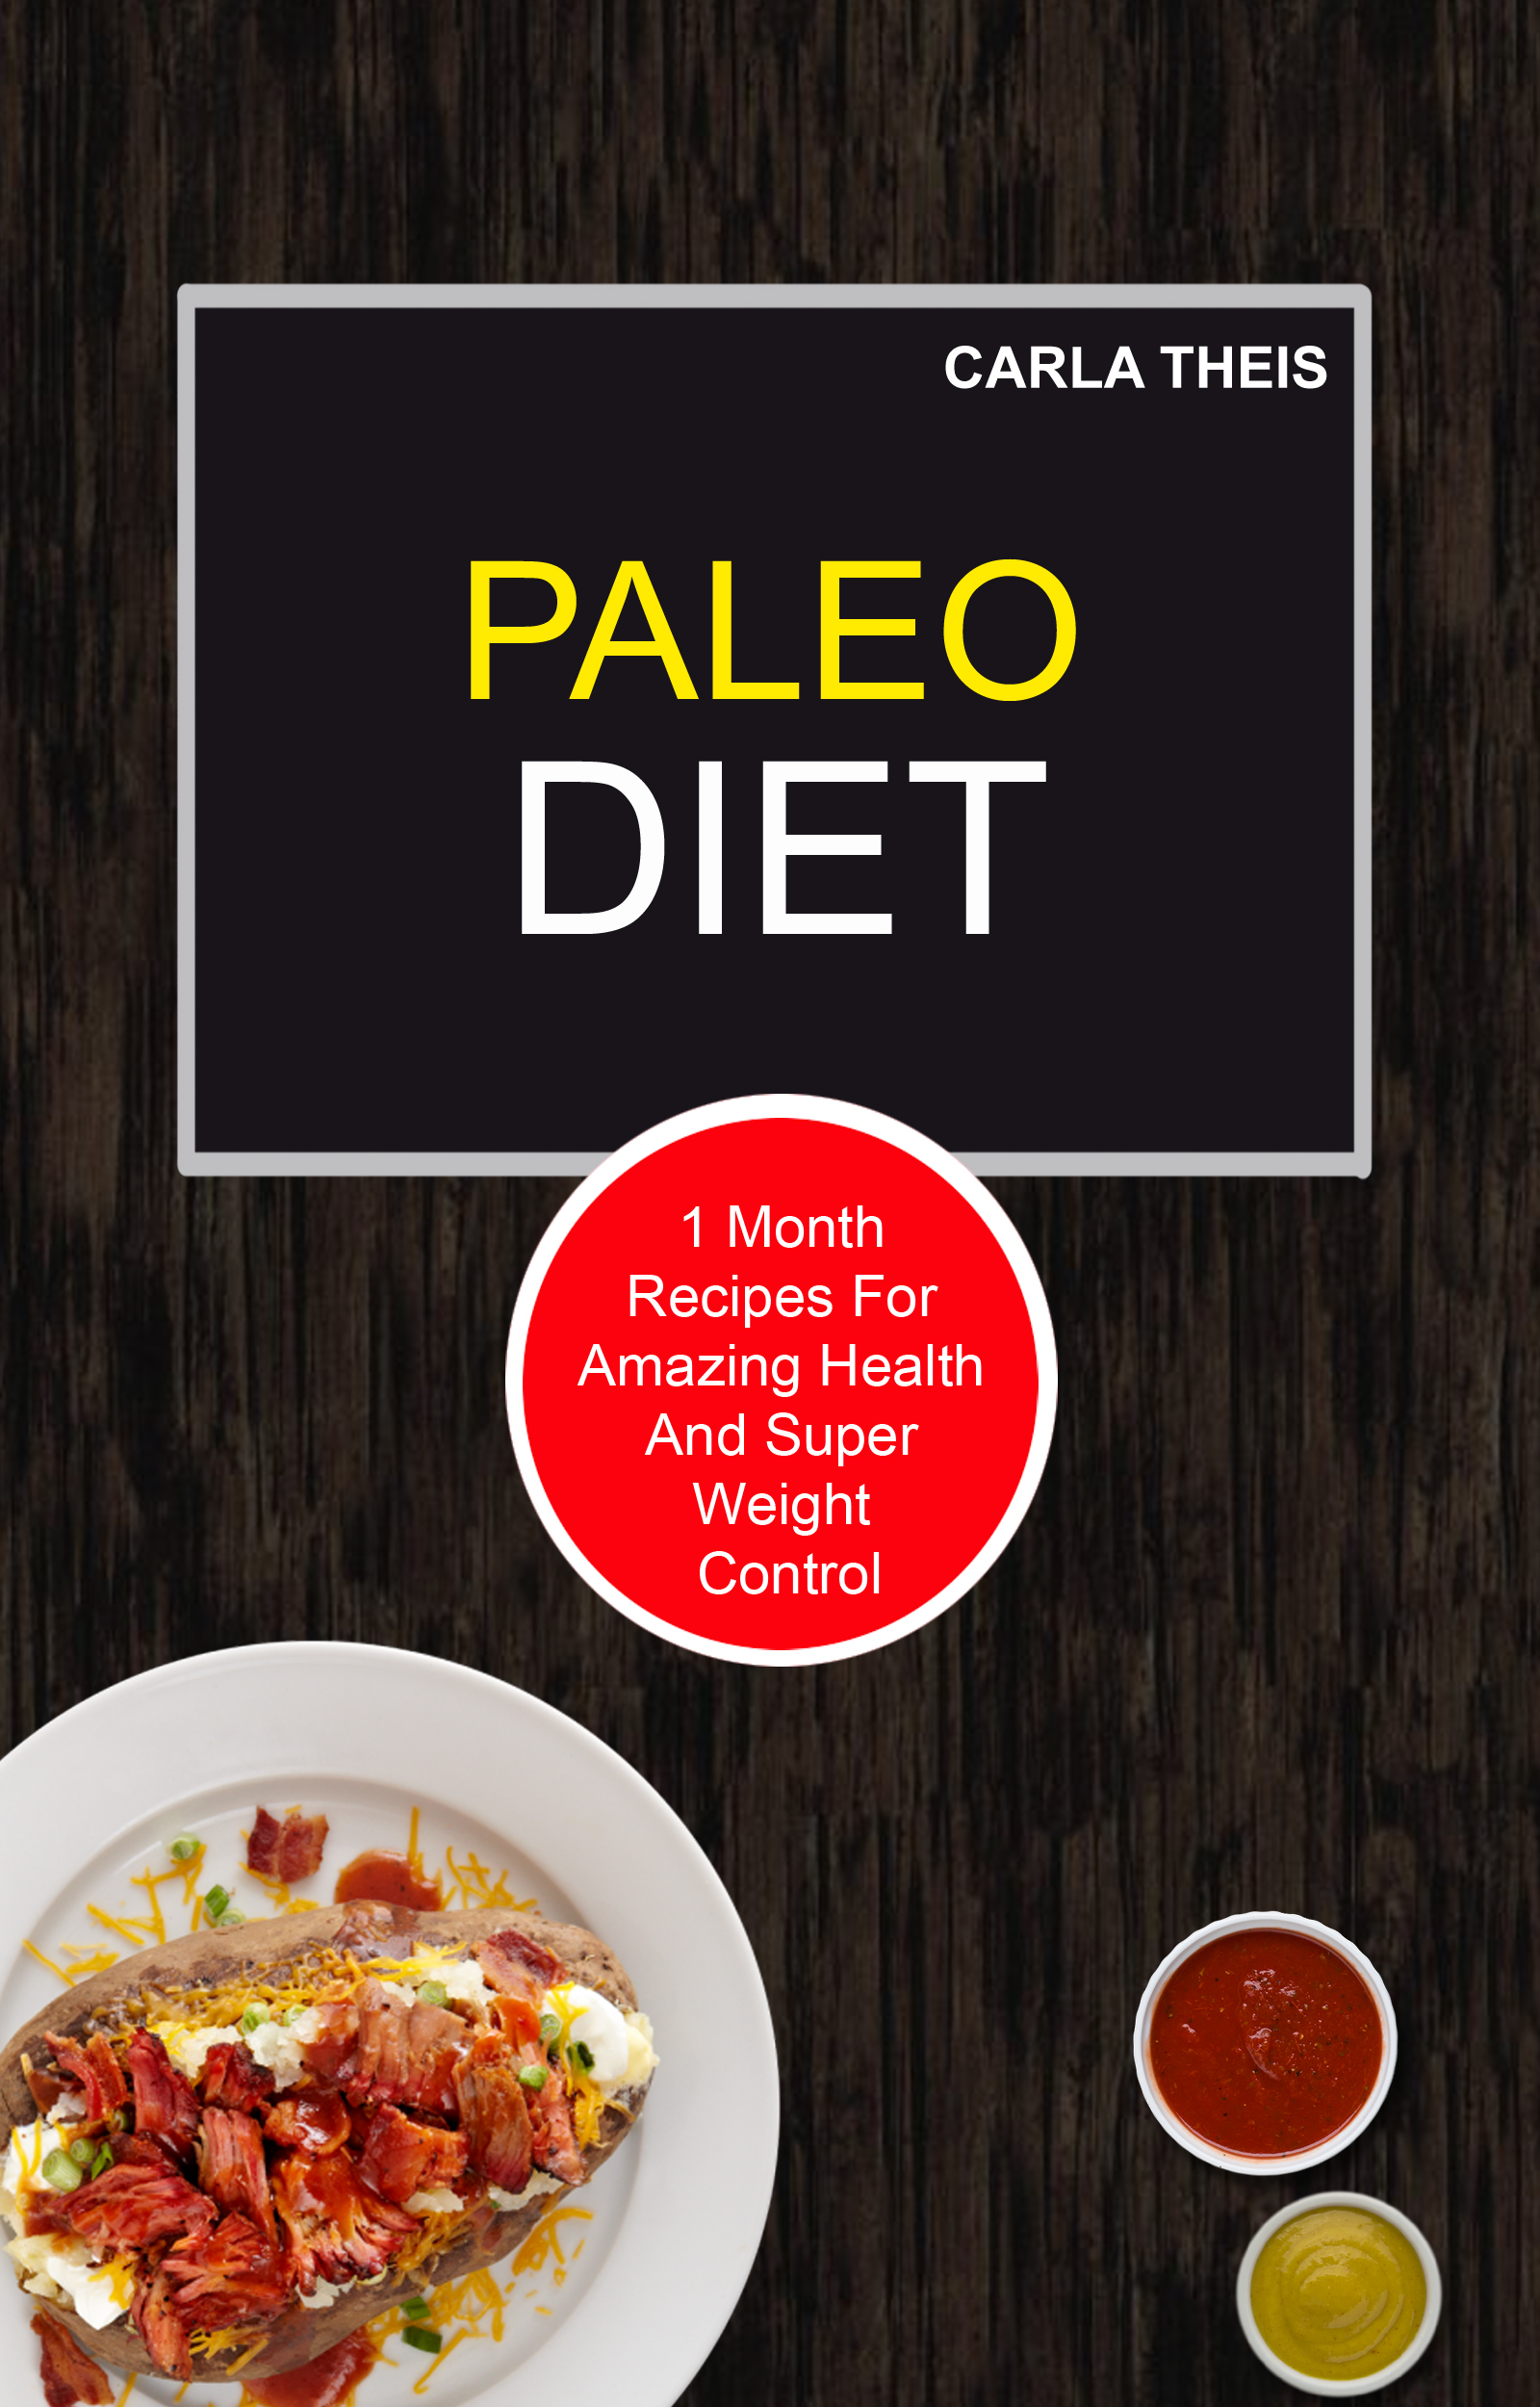 Paleo diet: 1month recipes for amazing health and super weight control